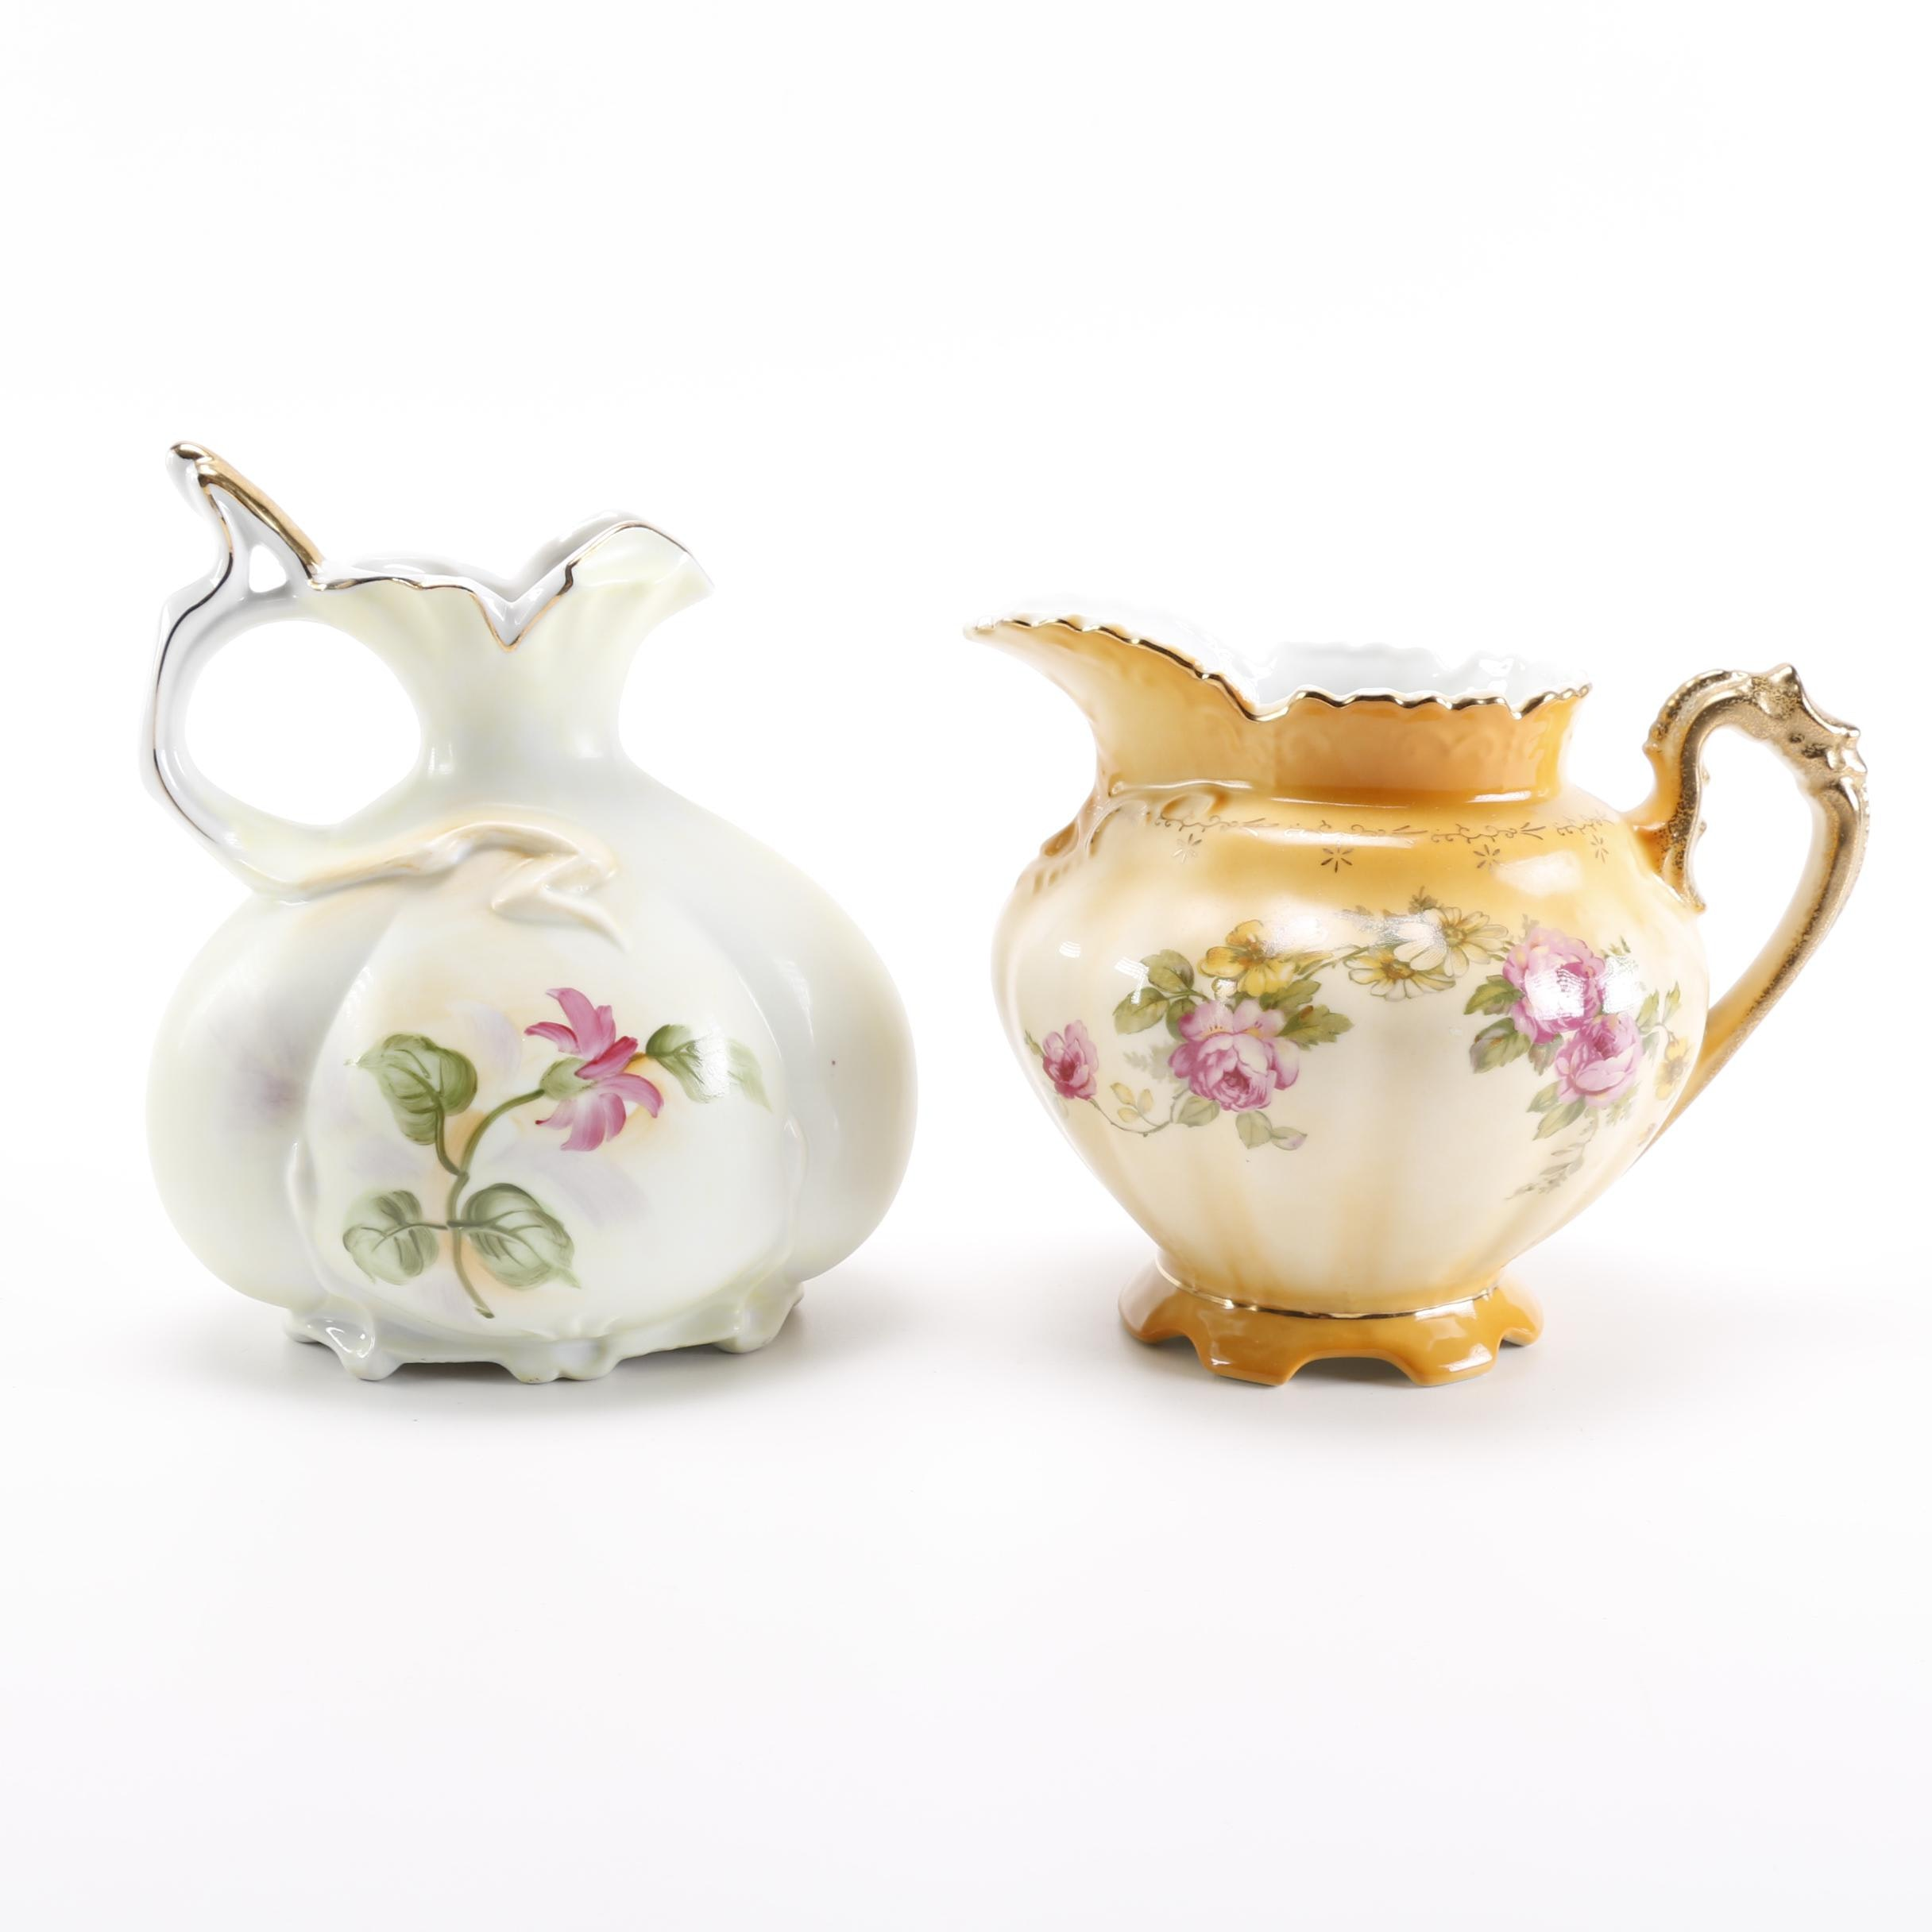 Reproduction Porcelain Pitchers